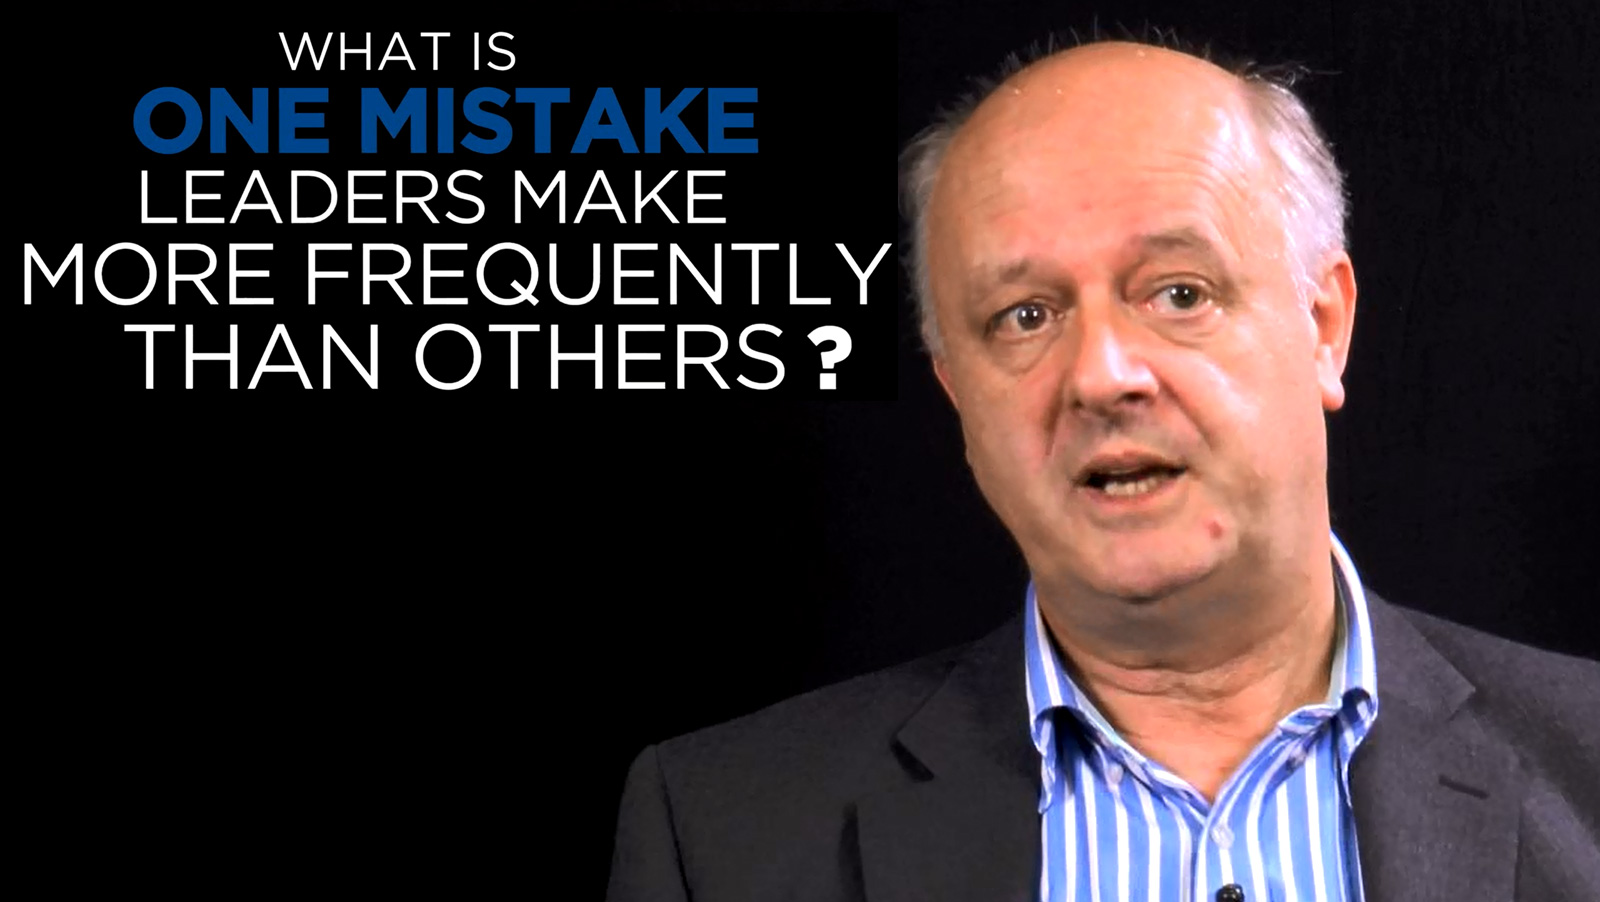 Shared Experience – What is one mistake leaders make more frequently than others?